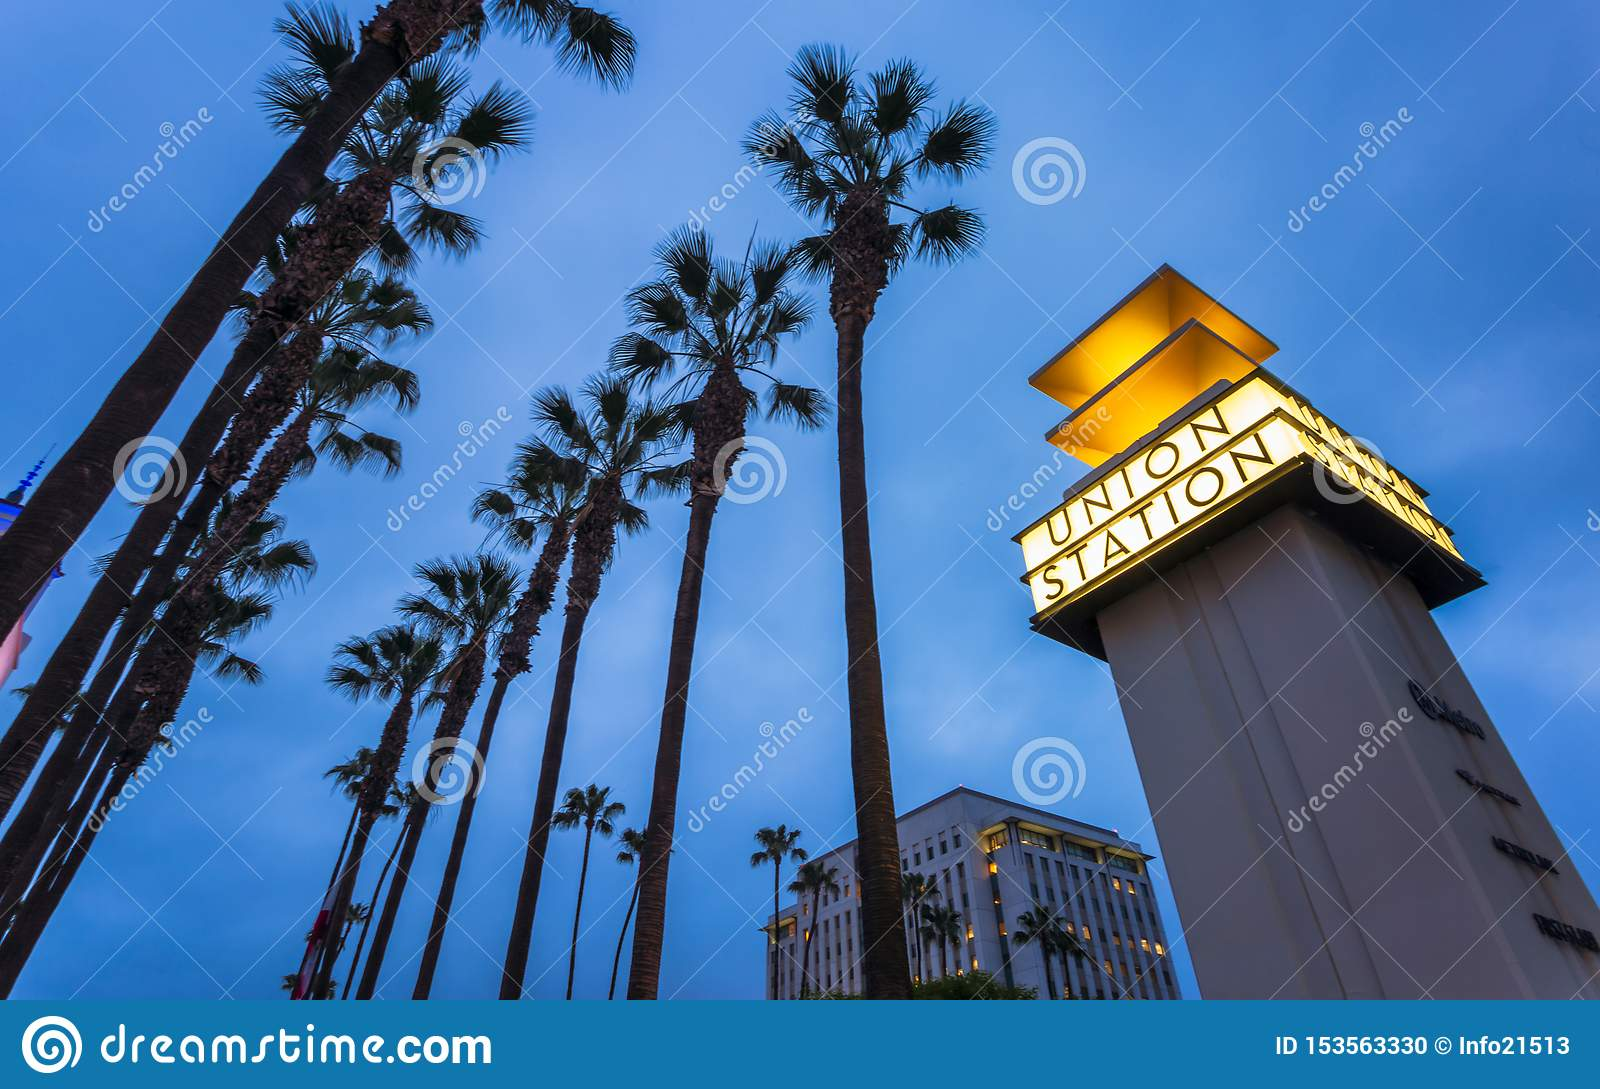 Union Station, Downtown Los Angeles, California, United States of America.